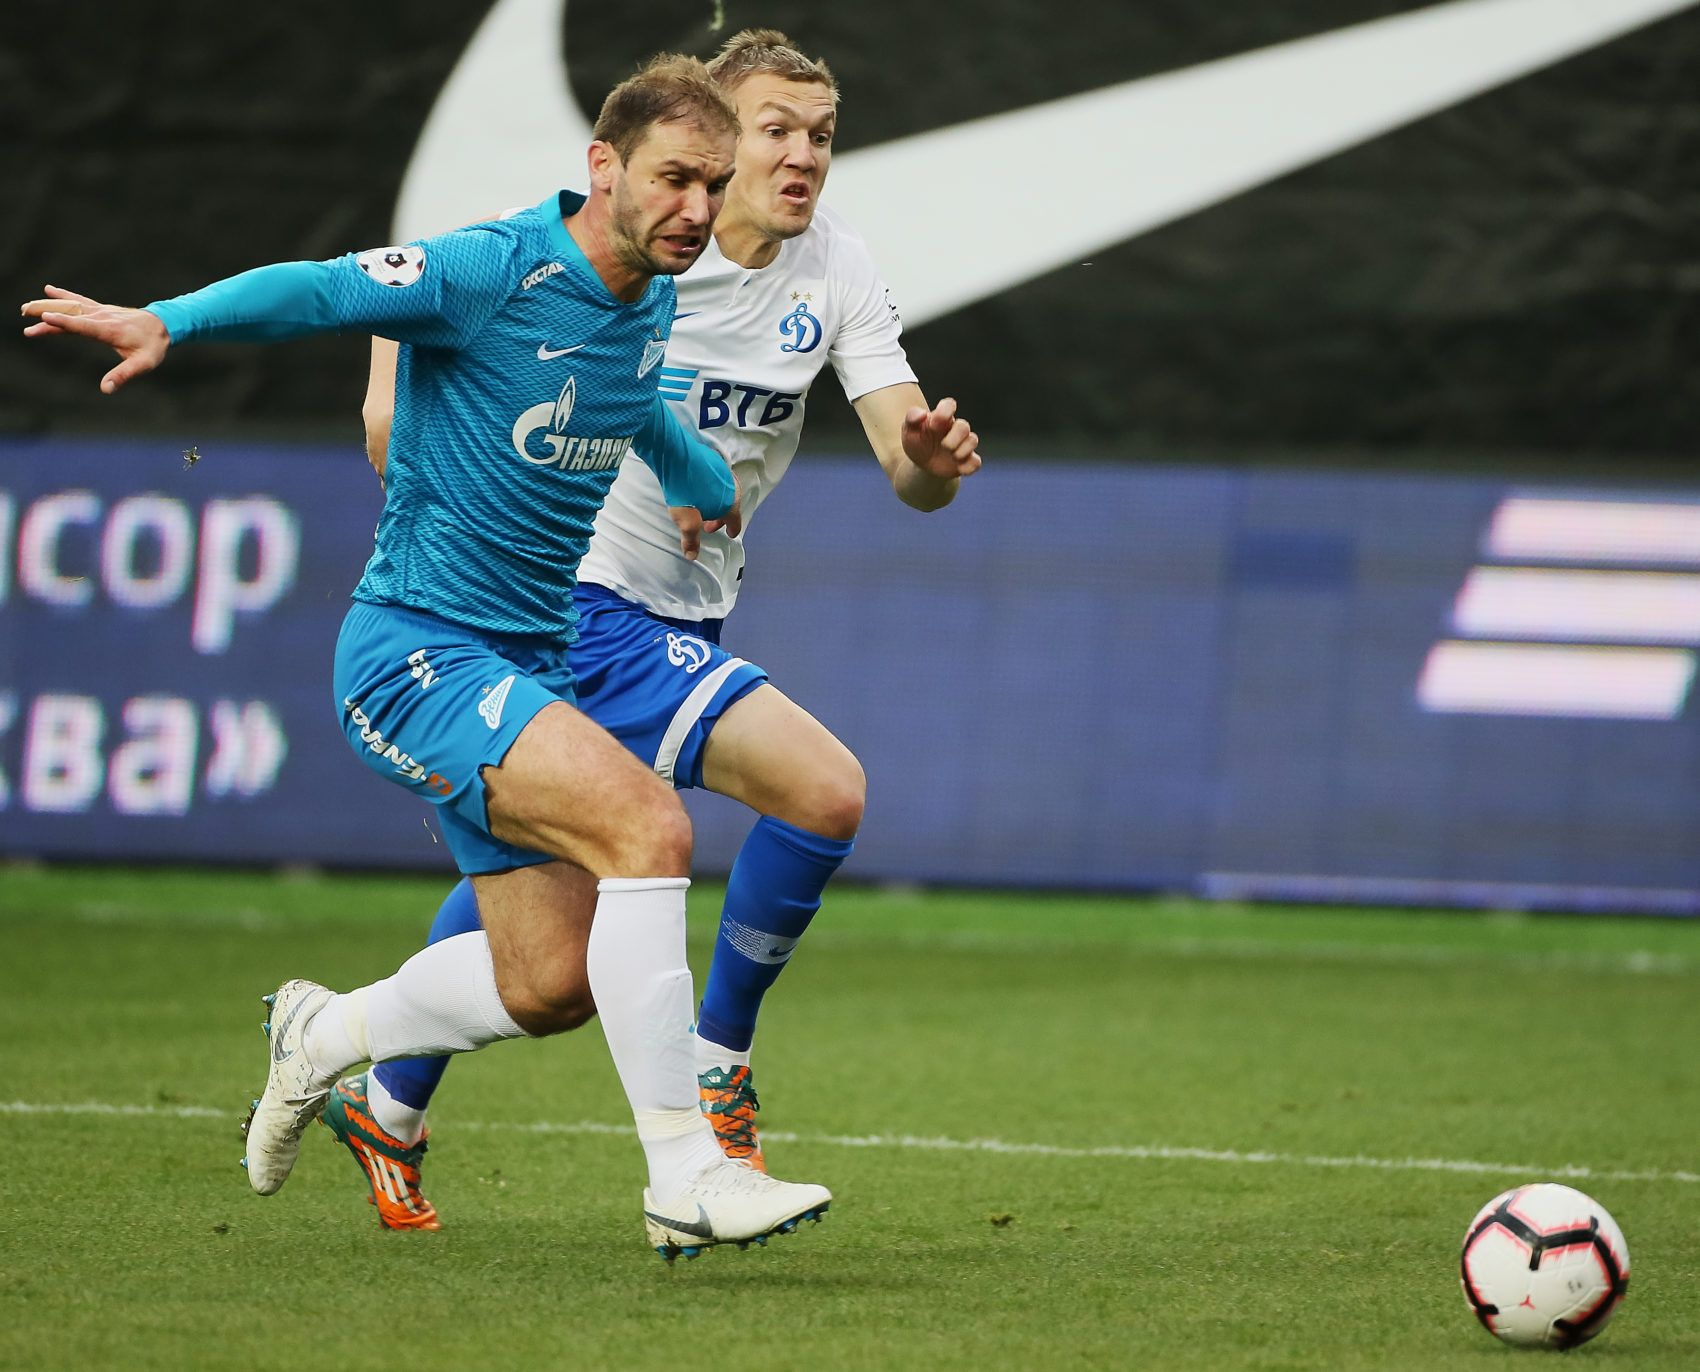 Zenit vs valencia betting lines online sports betting odds